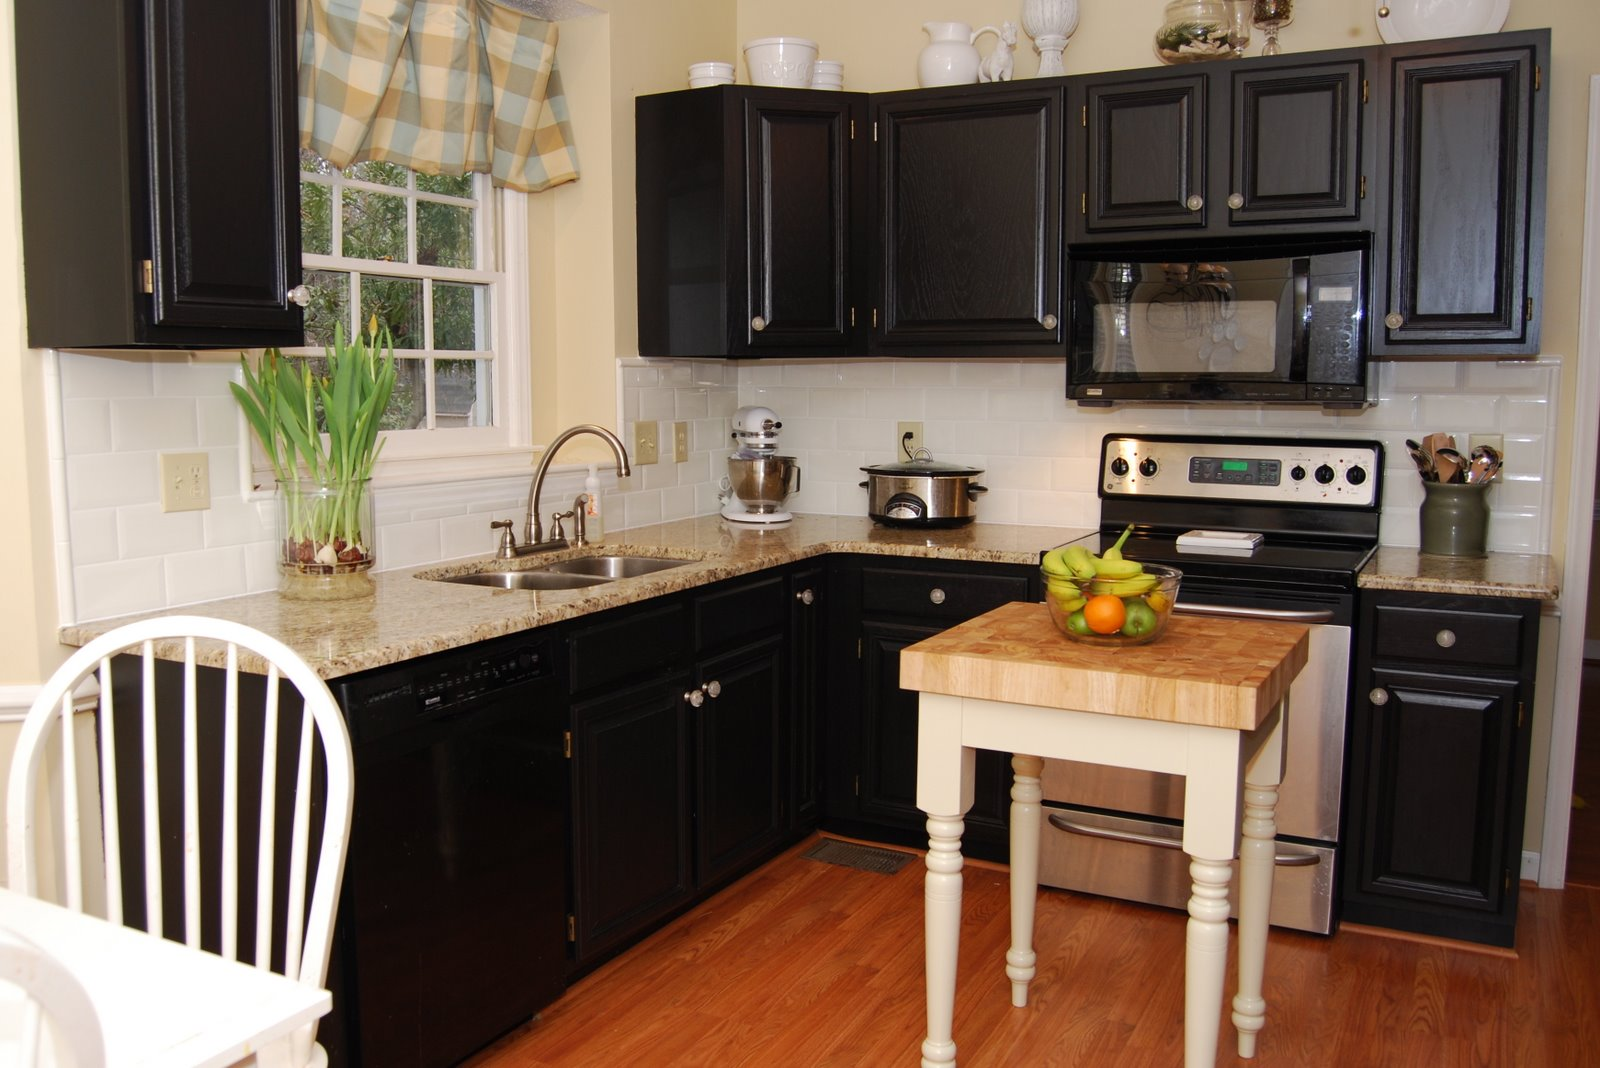 Redecorating remodeling kitchen need help babycenter for Redecorating kitchen